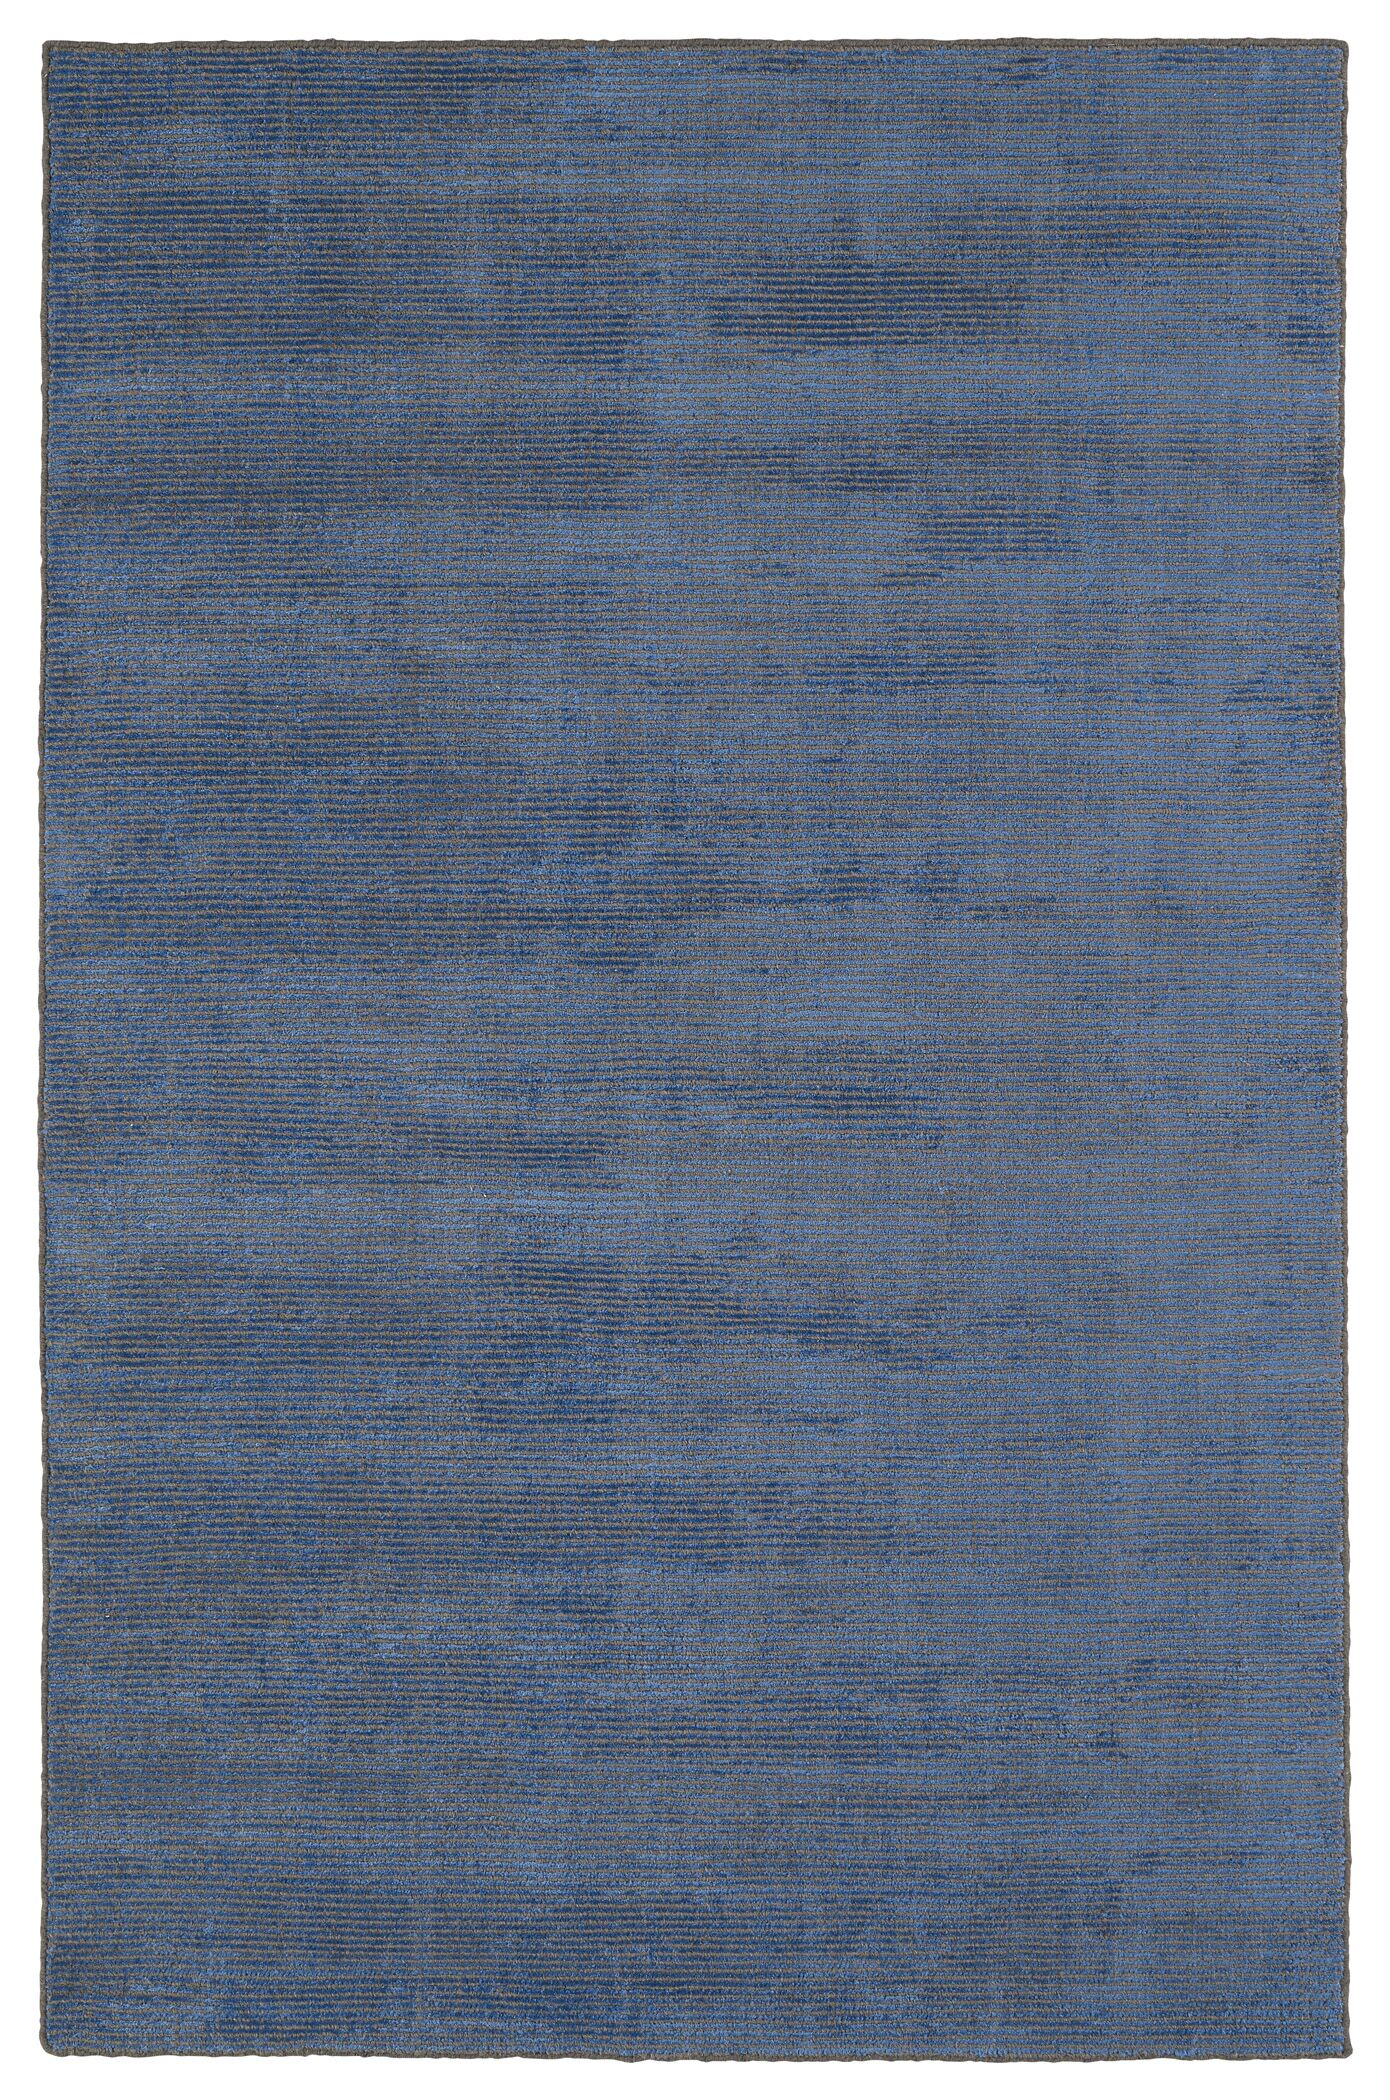 Claverham Hand Woven Blue Area Rug Rug Size: Rectangle 9' x 12'